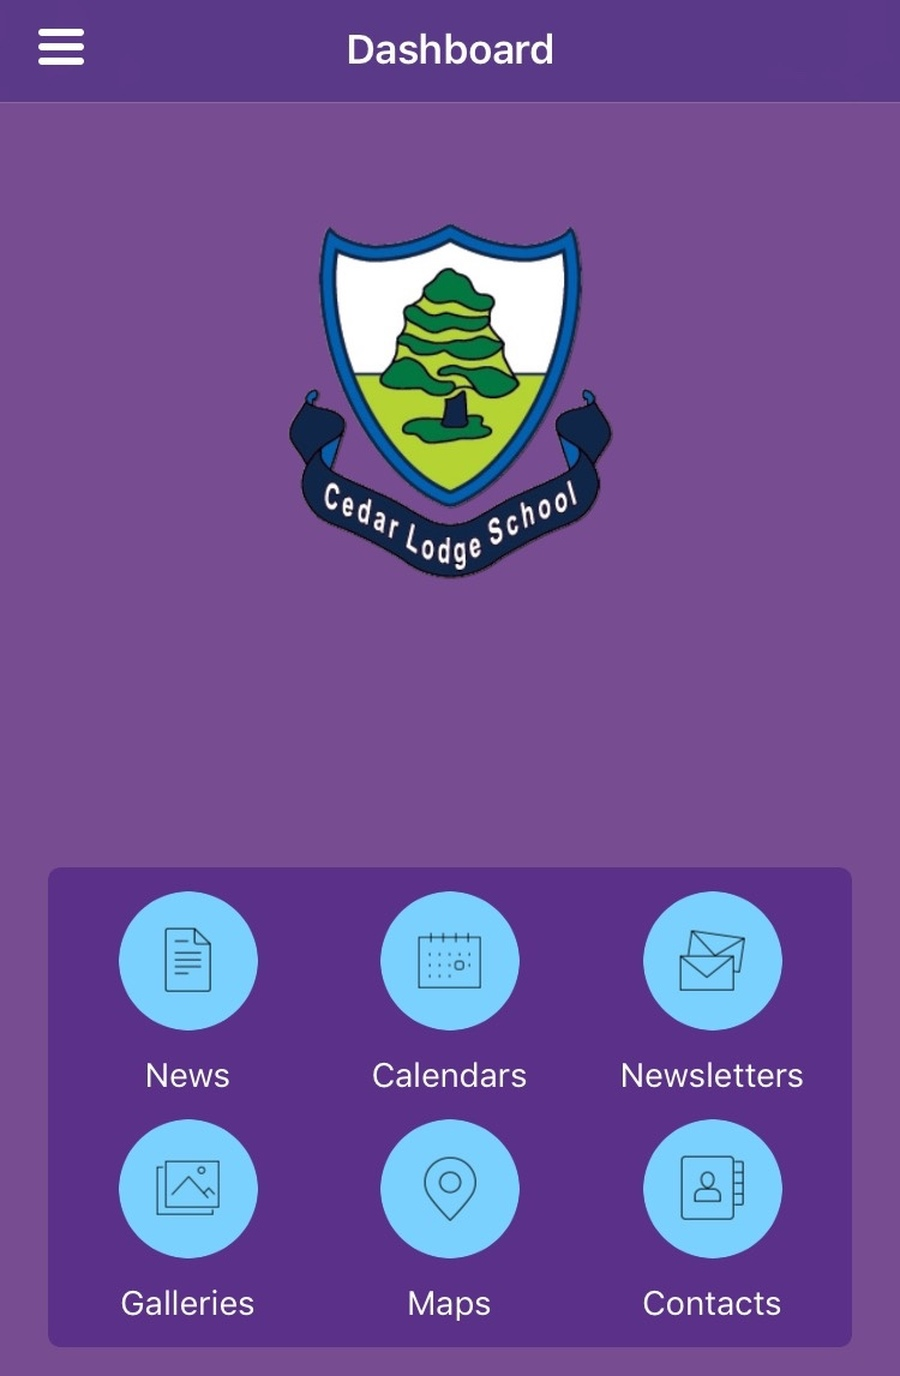 Download our new school app to stay up to date with events, dates and news.